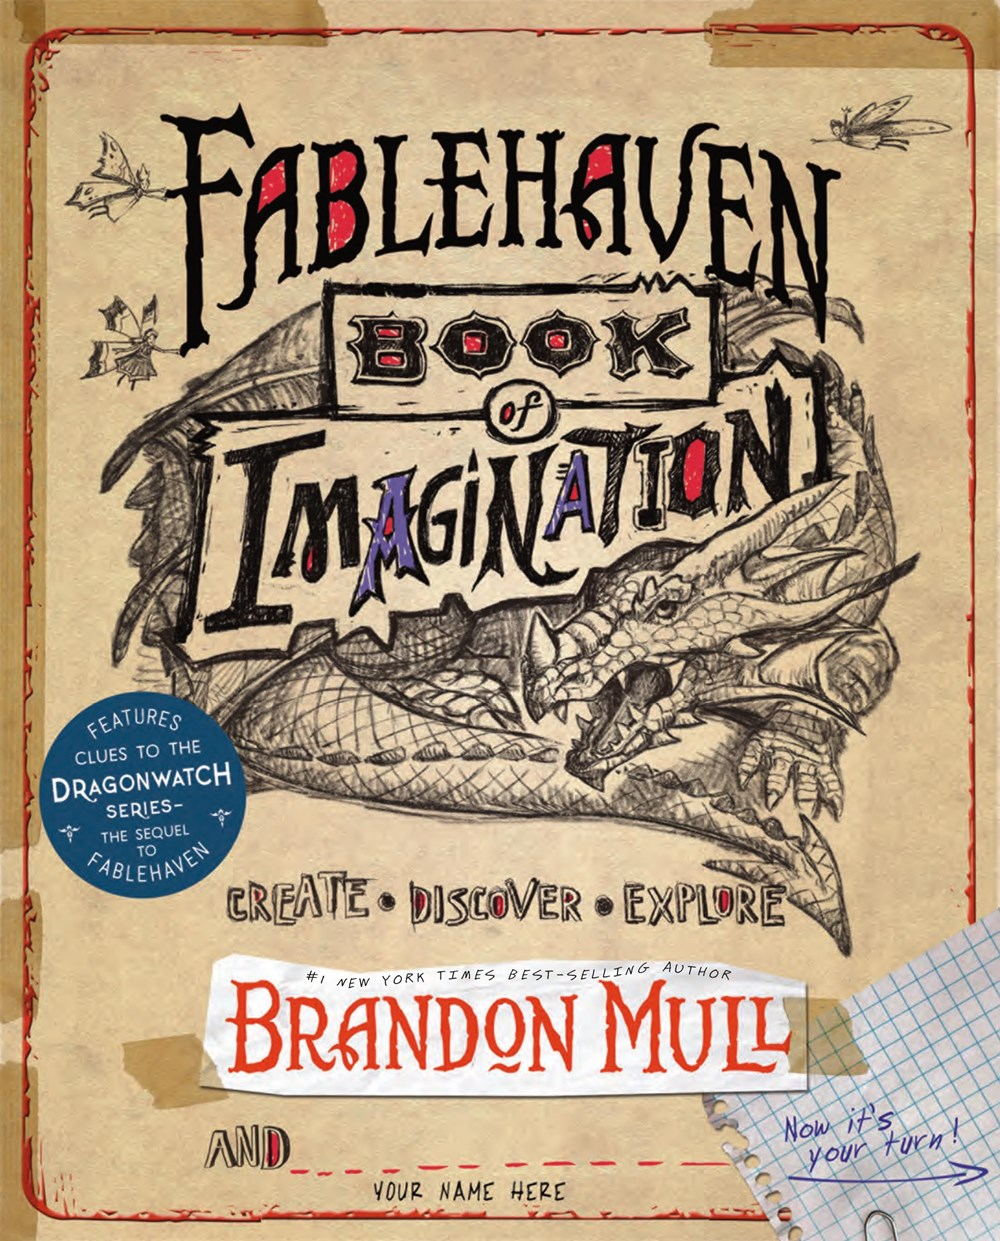 Fablehaven Book of Imagination (Dragonwatch Series)